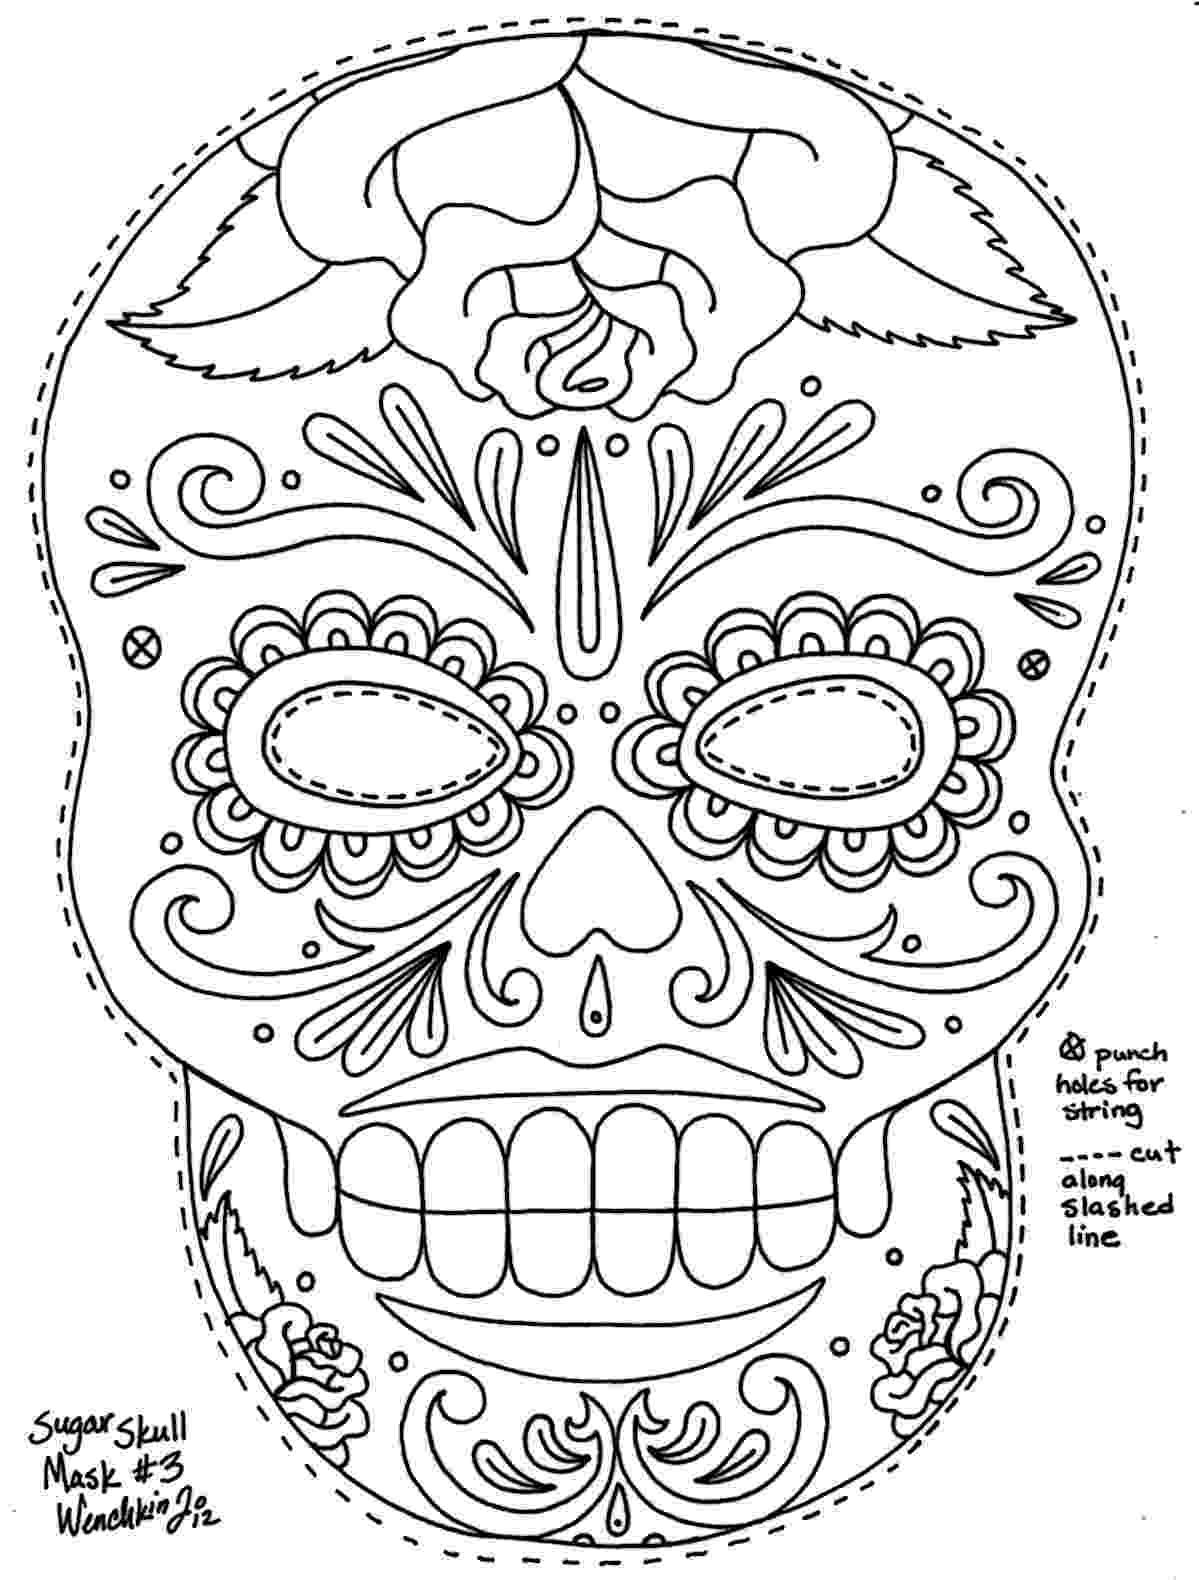 day of the dead coloring skulls sugar skull coloring page free printable coloring pages of the skulls coloring day dead